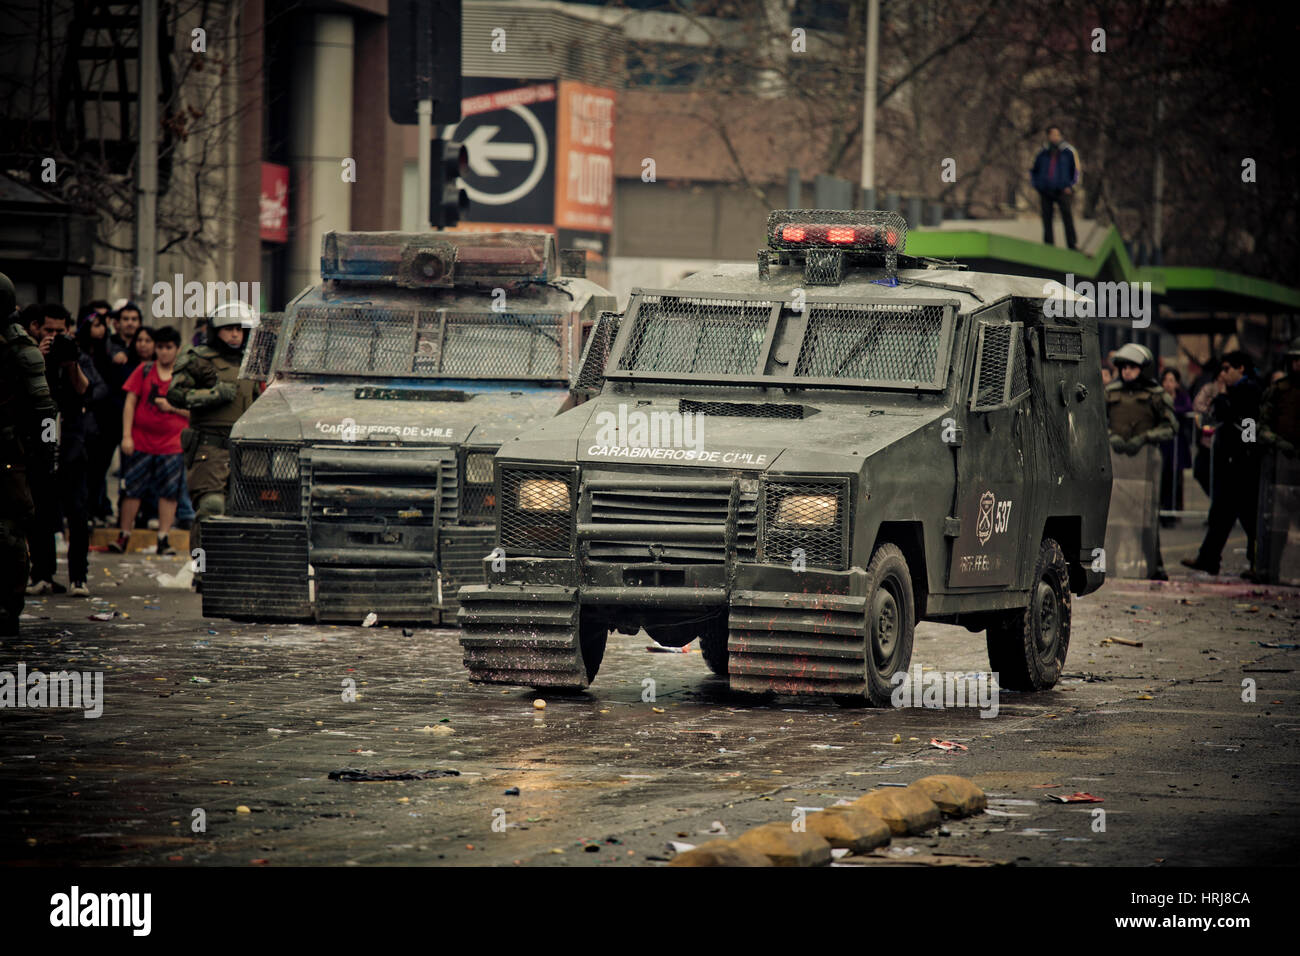 Chilean police Armored Vehicle on the street during a student strike in Santiago's Downtown, Chile. - Stock Image